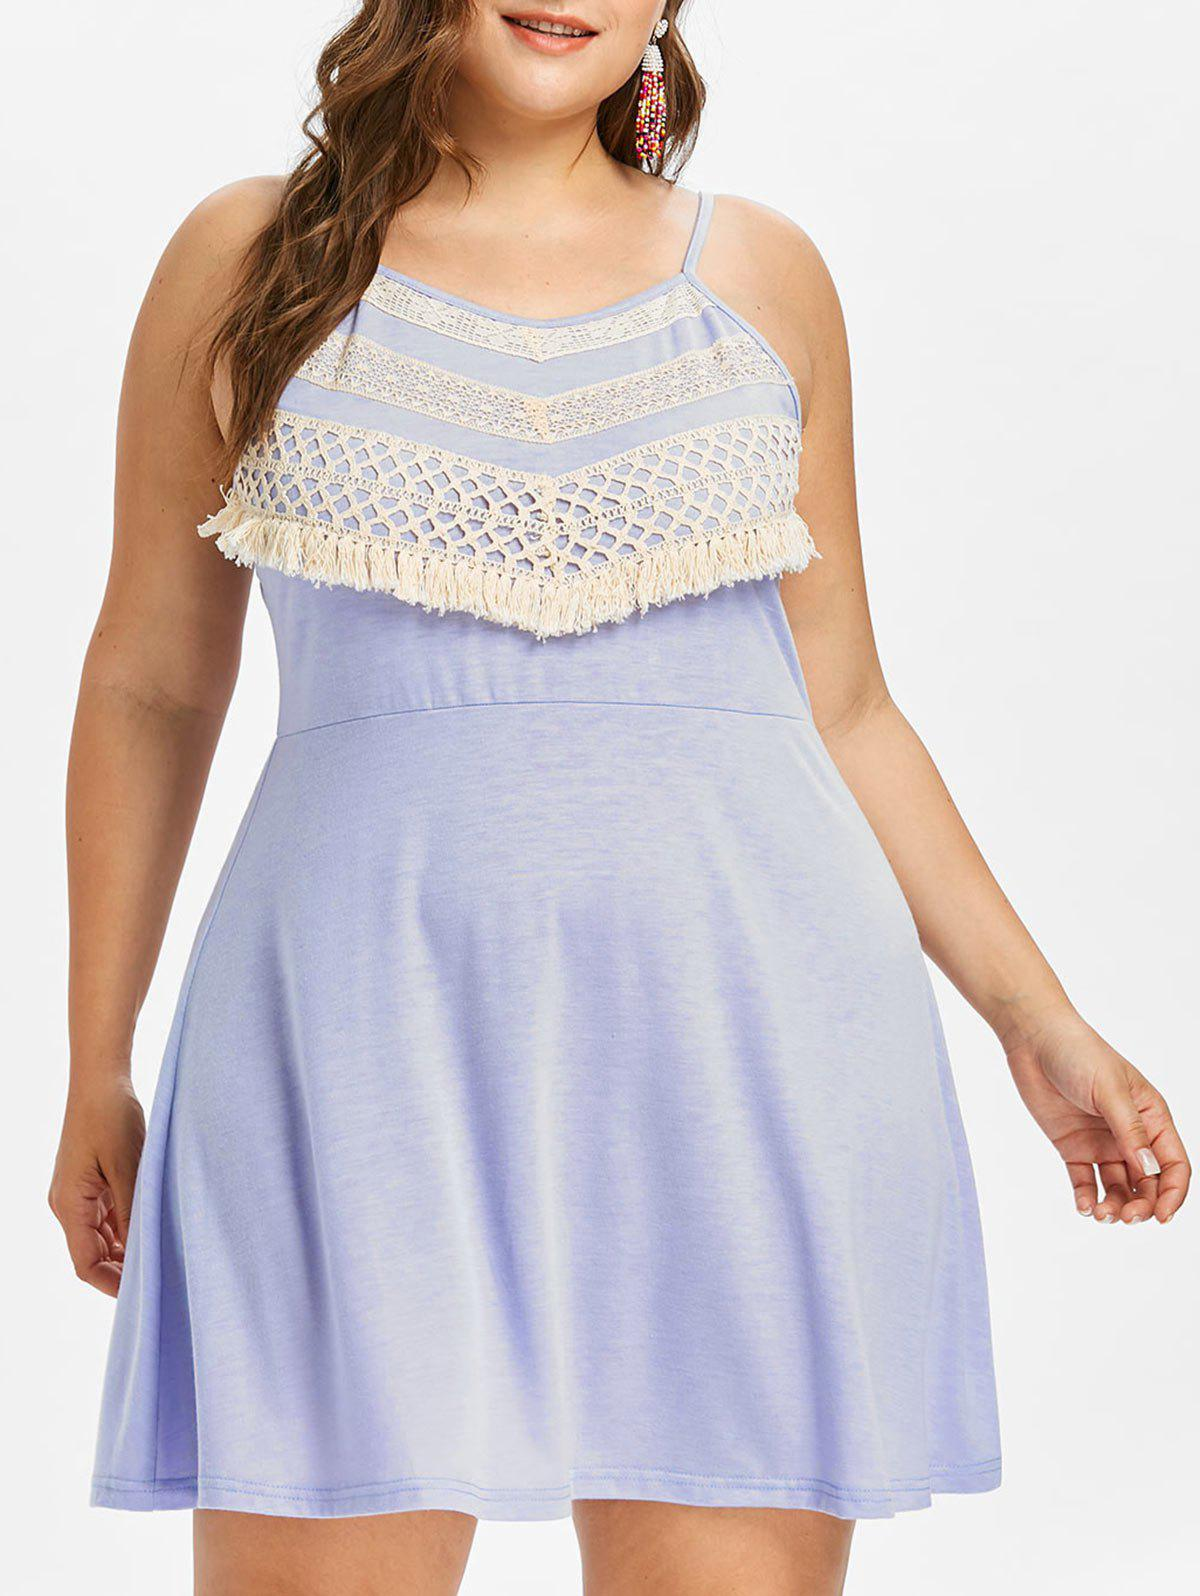 Shop Plus Size Crochet Lace Mini Slip Dress